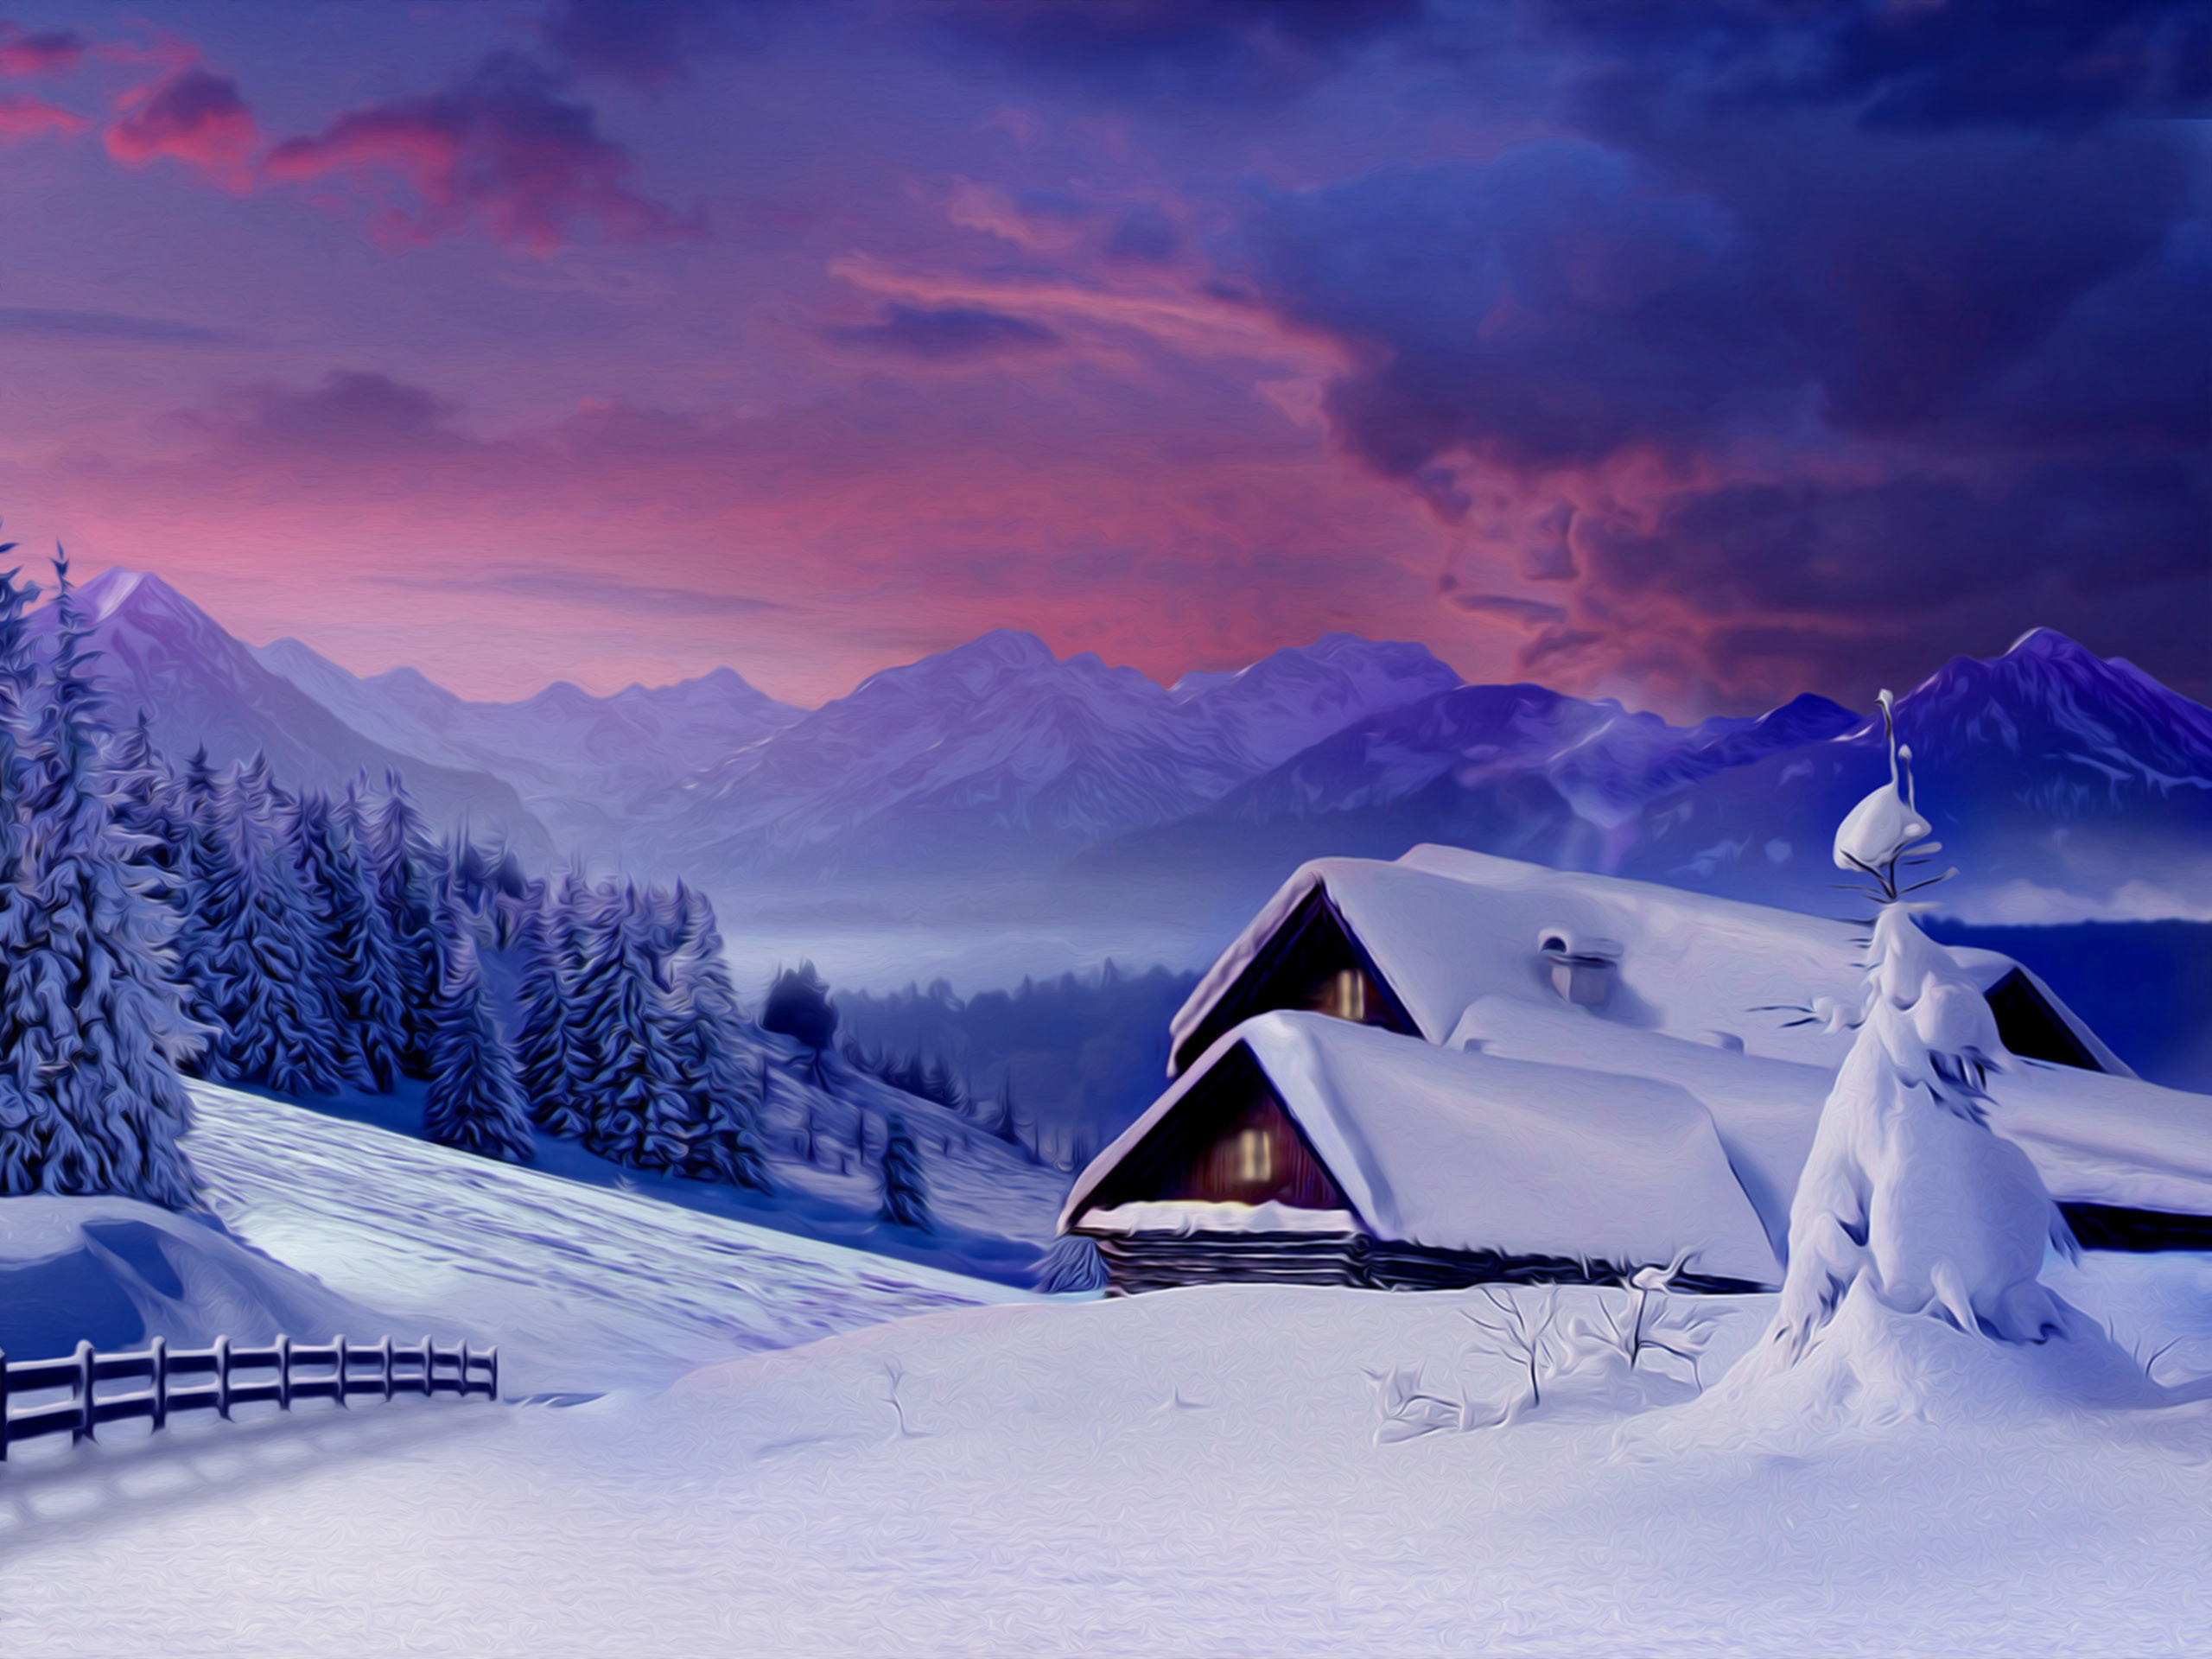 2560x1920 winter snow scene pictures | Snow Wallpapers | Desktop Wallpapers - Page 10